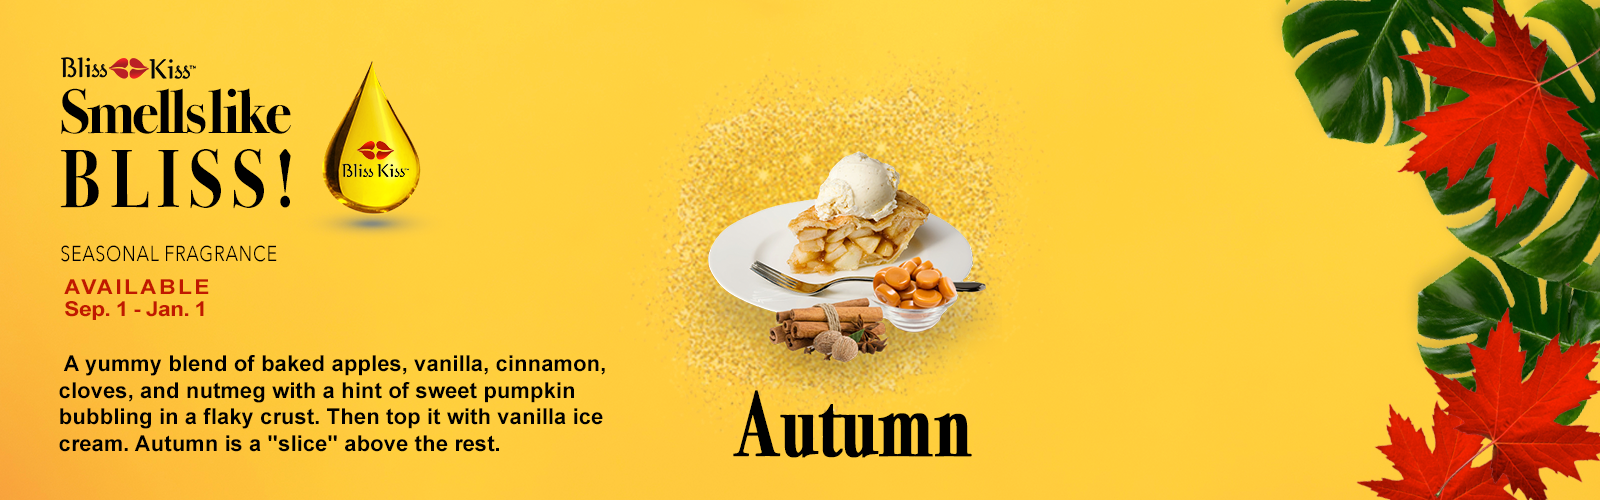 fragrance-banners-autumn.png